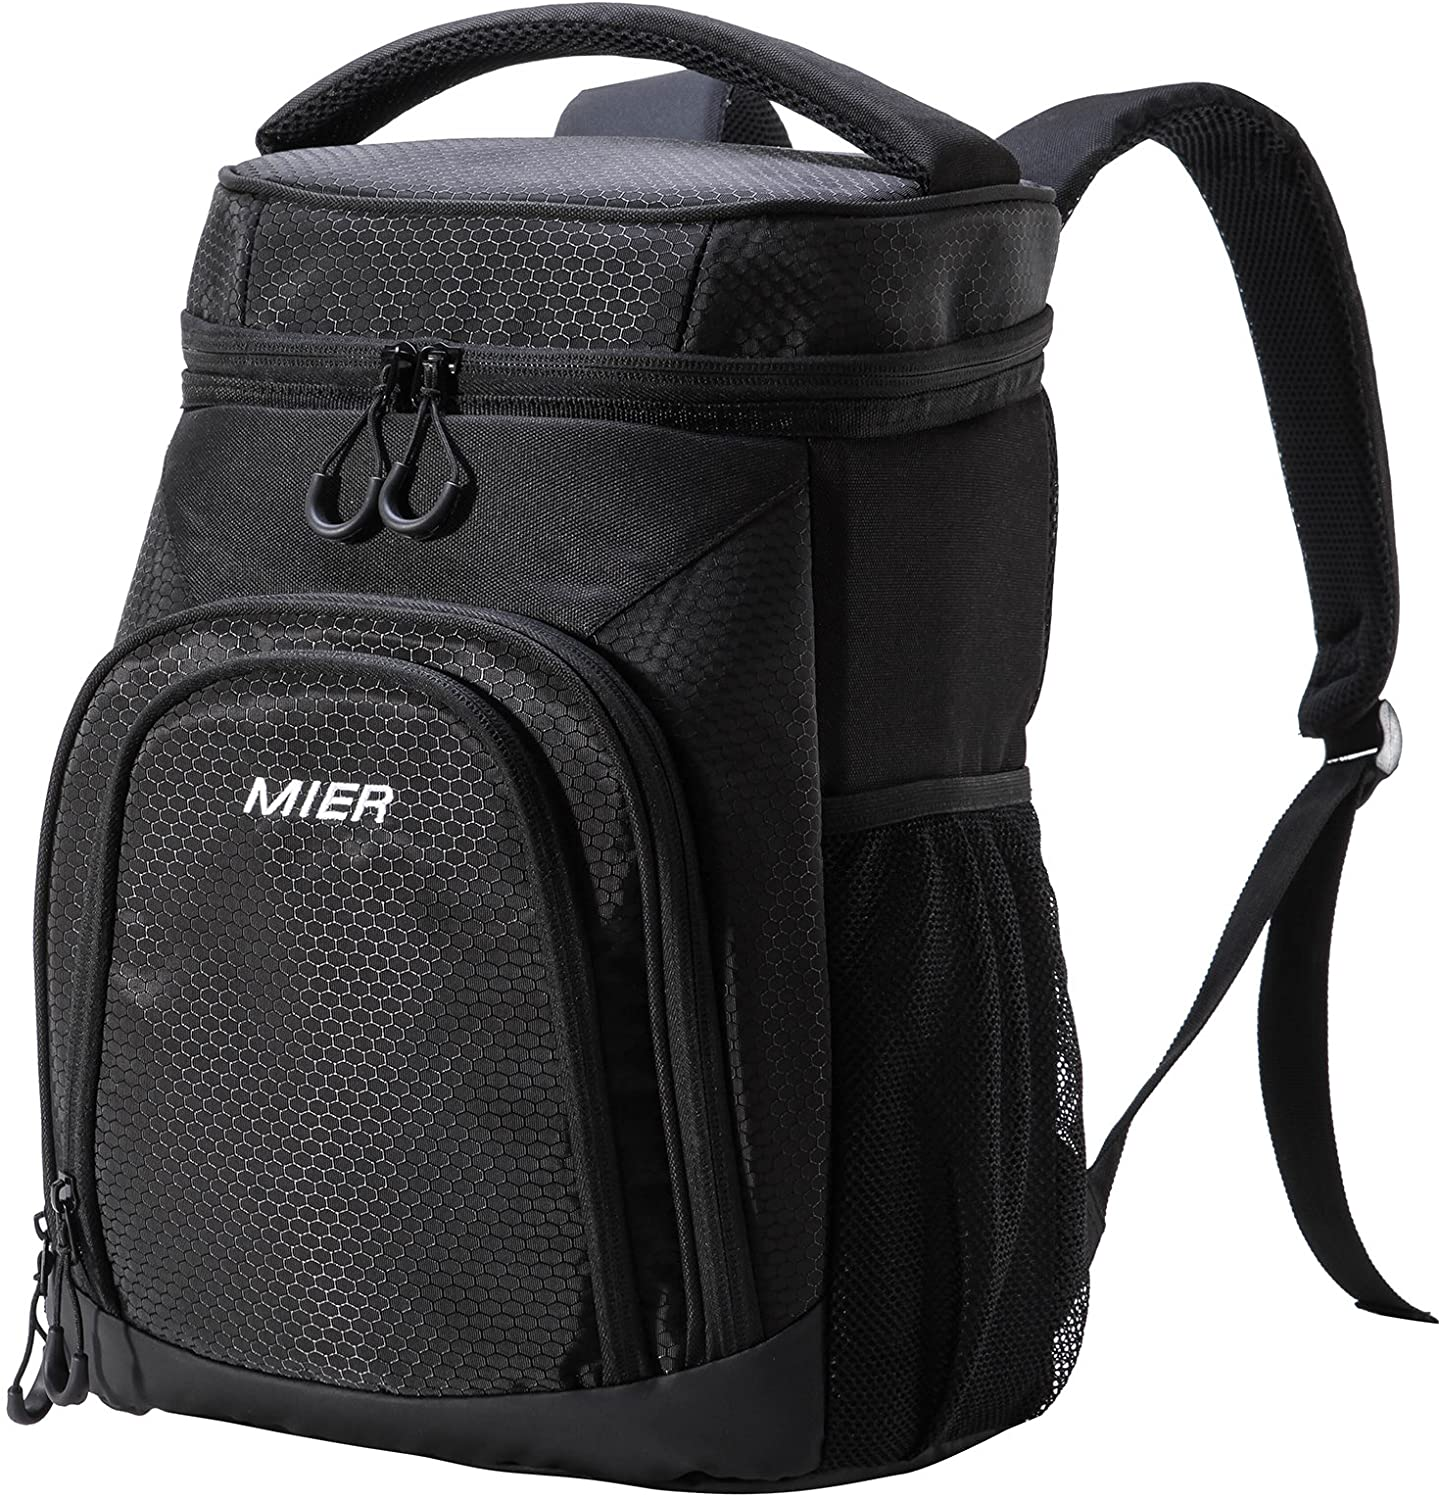 MIER Insulated Lunch Backpack